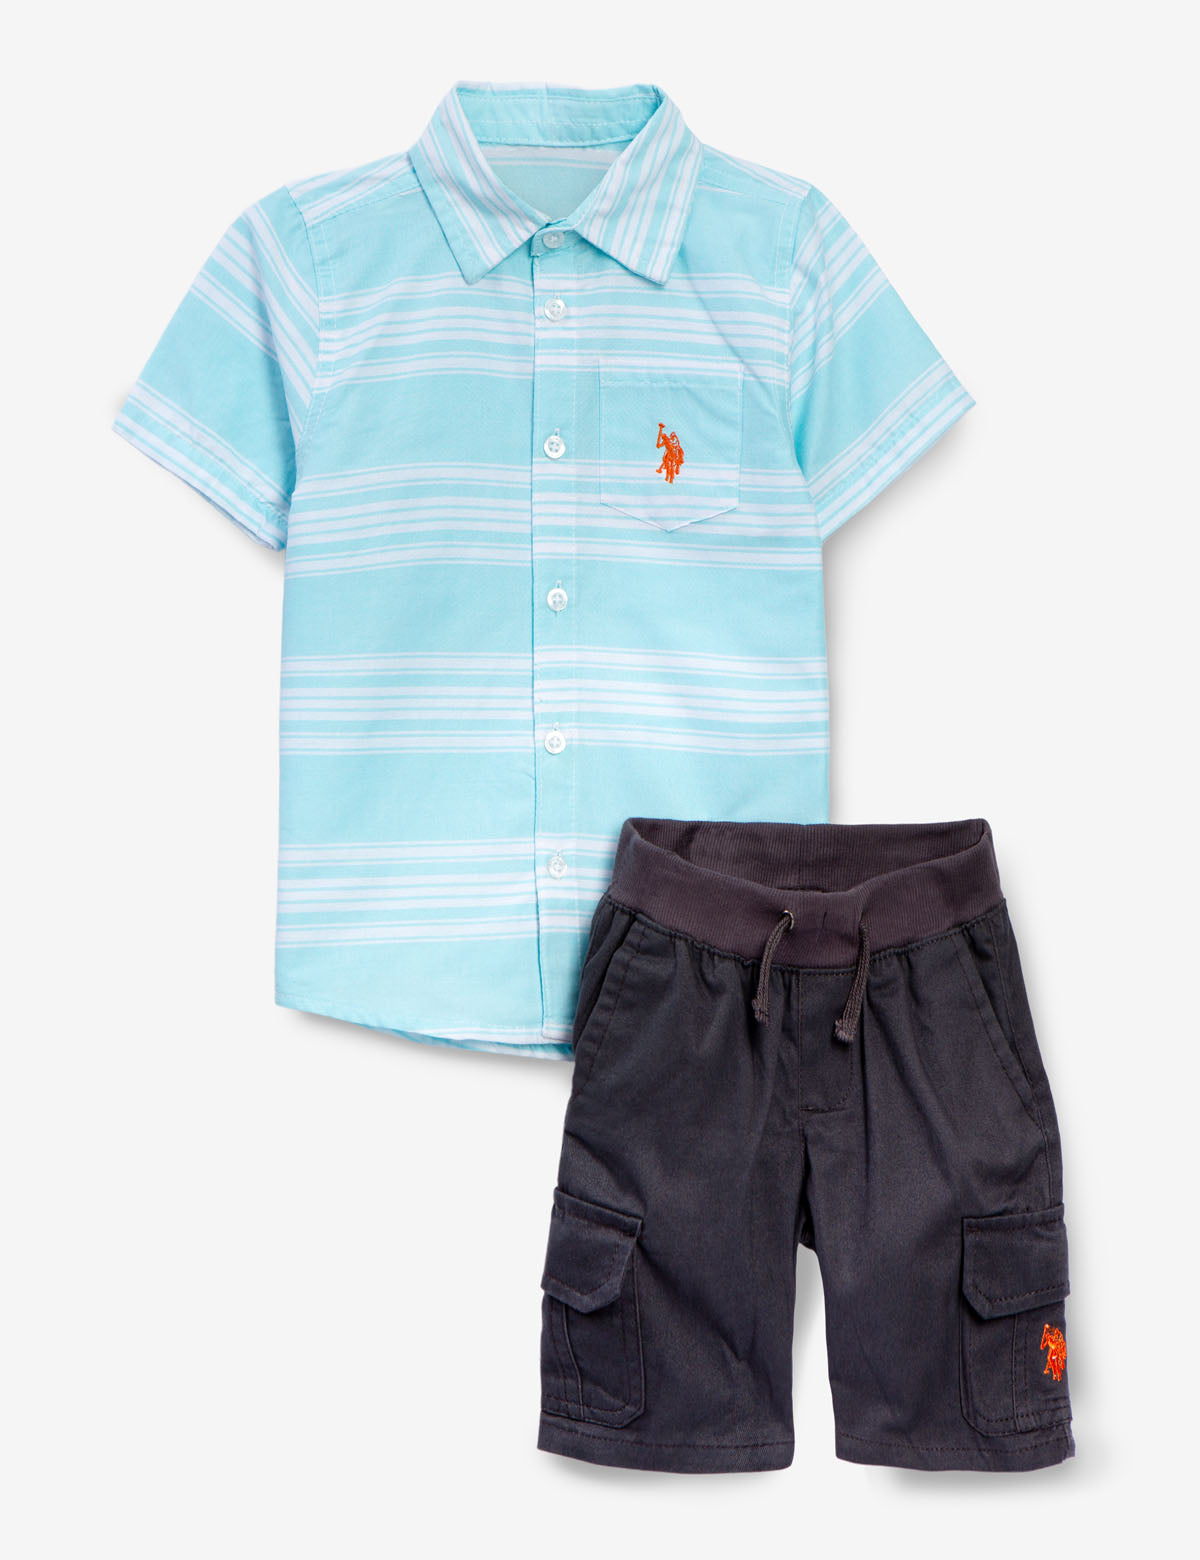 BOYS 2 PIECE SET - SHIRT & SHORTS